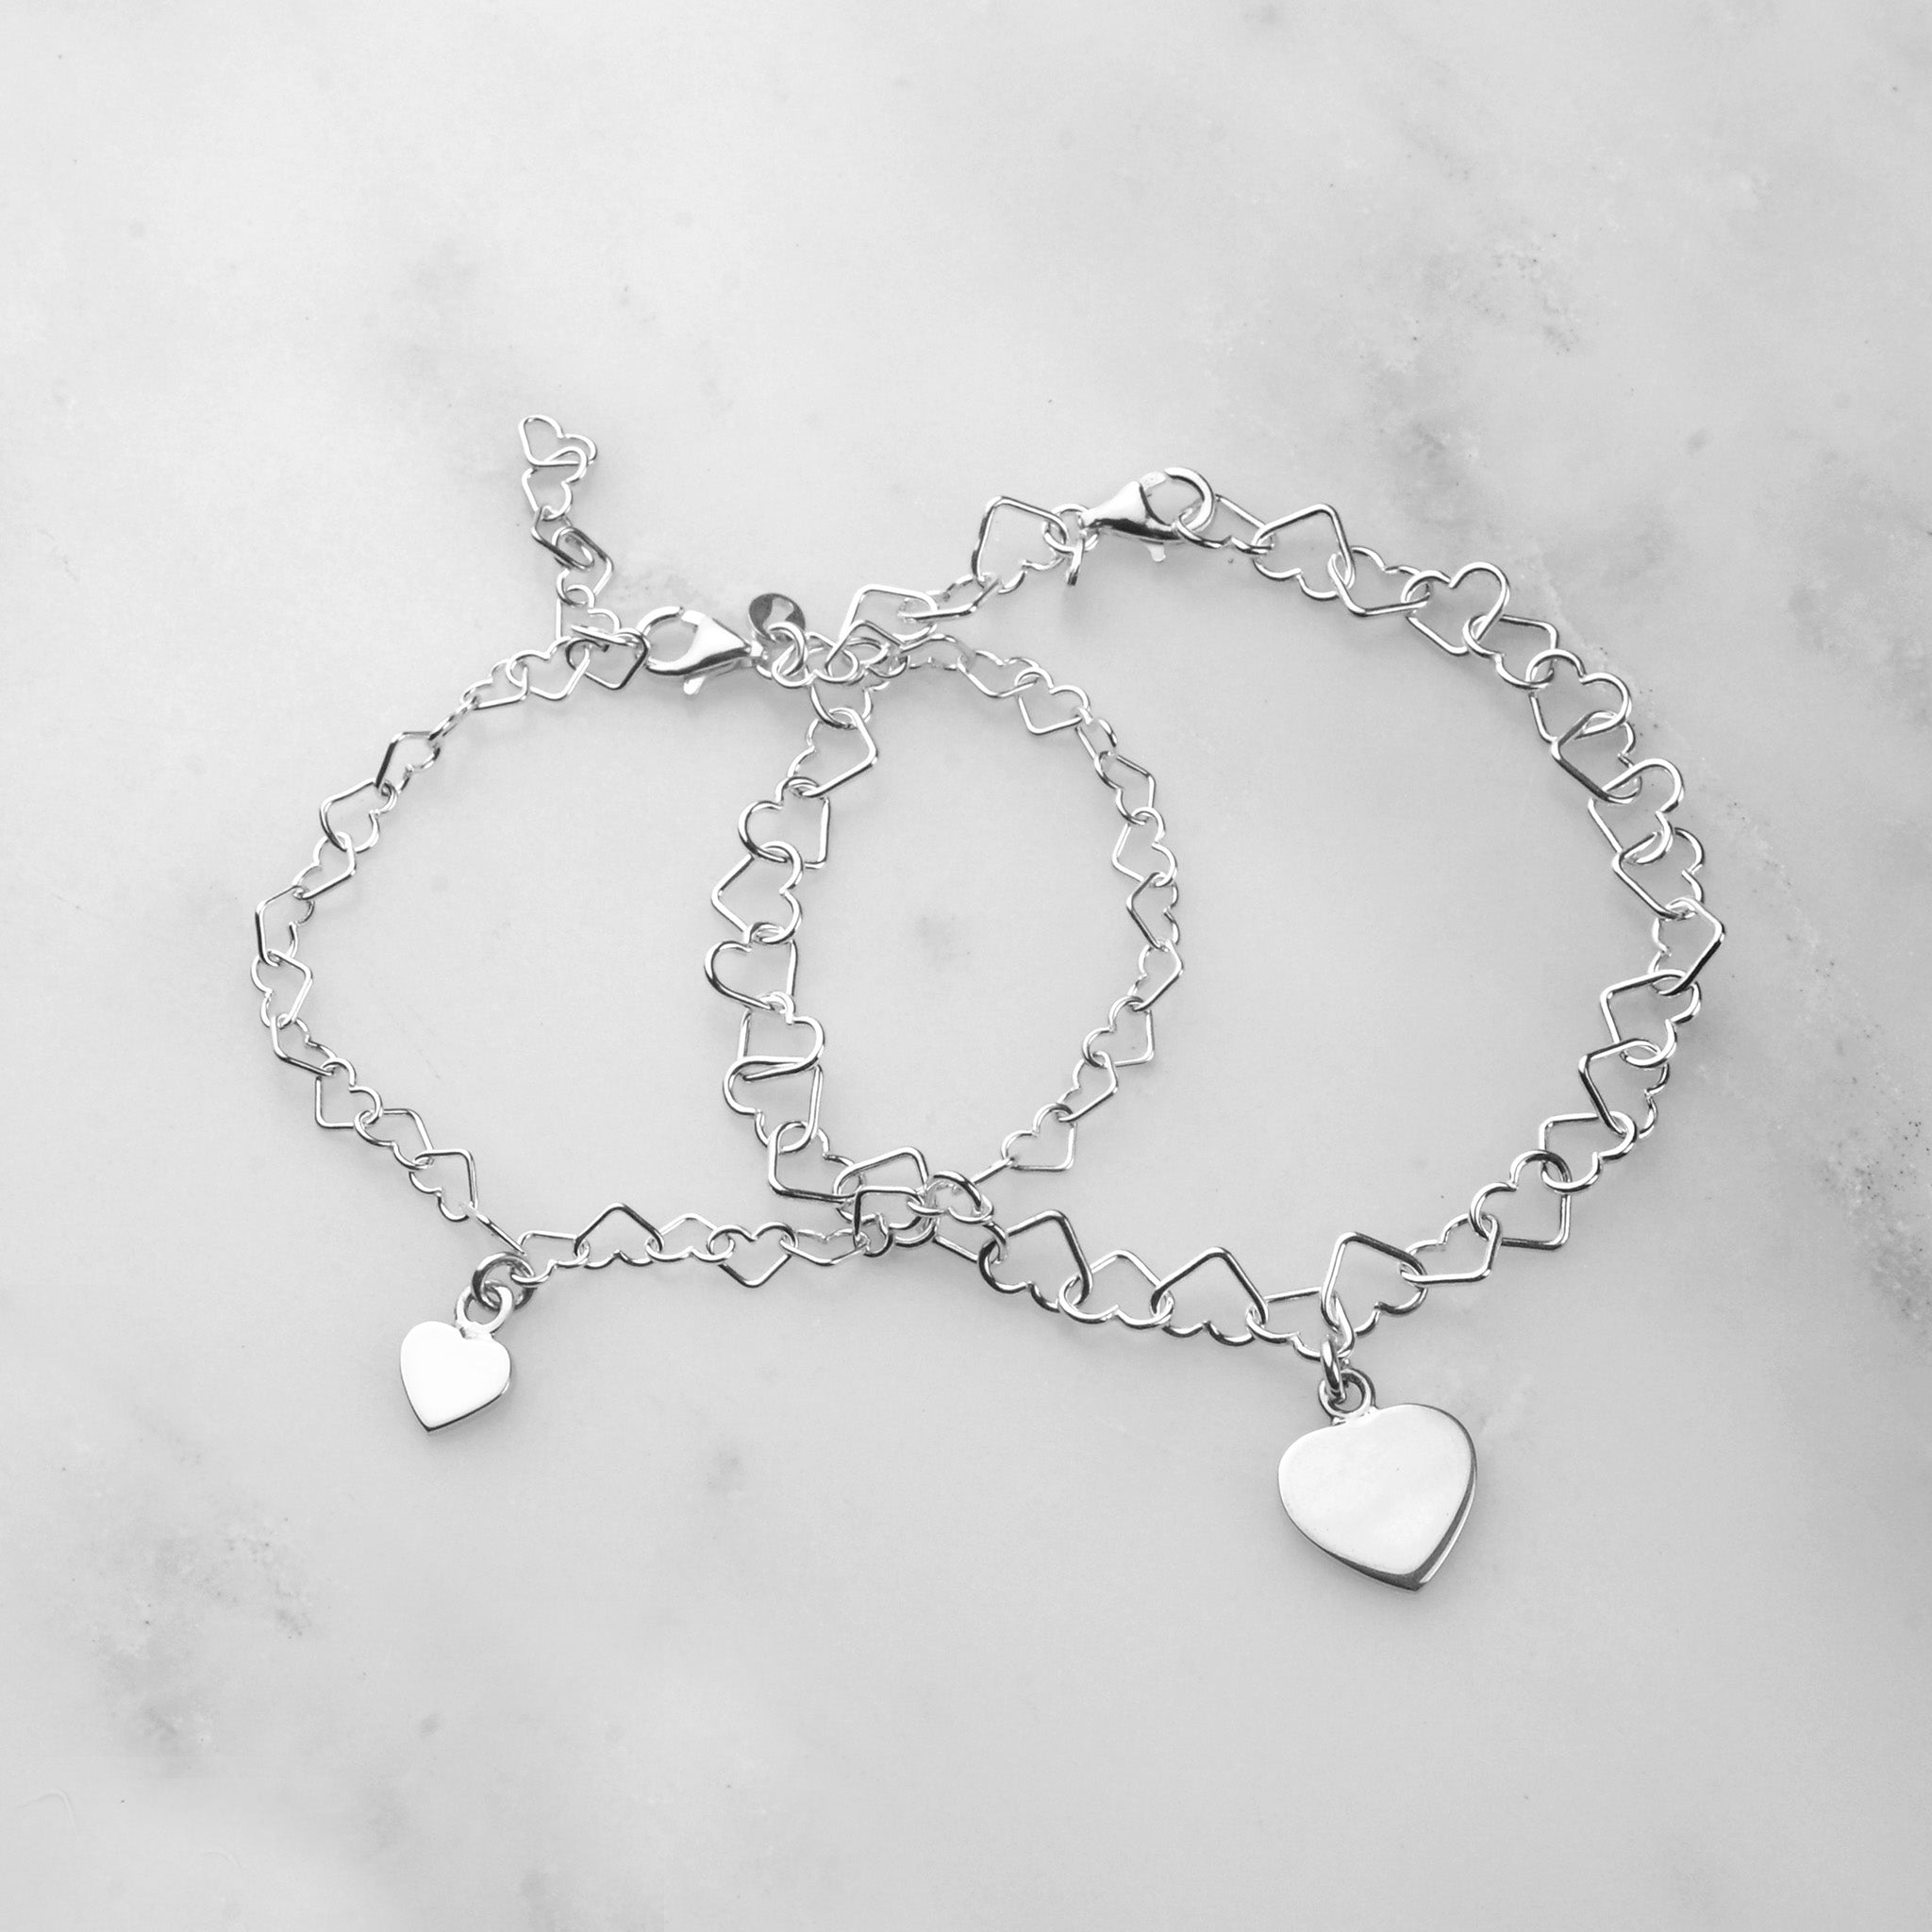 Linked Heart Bracelets